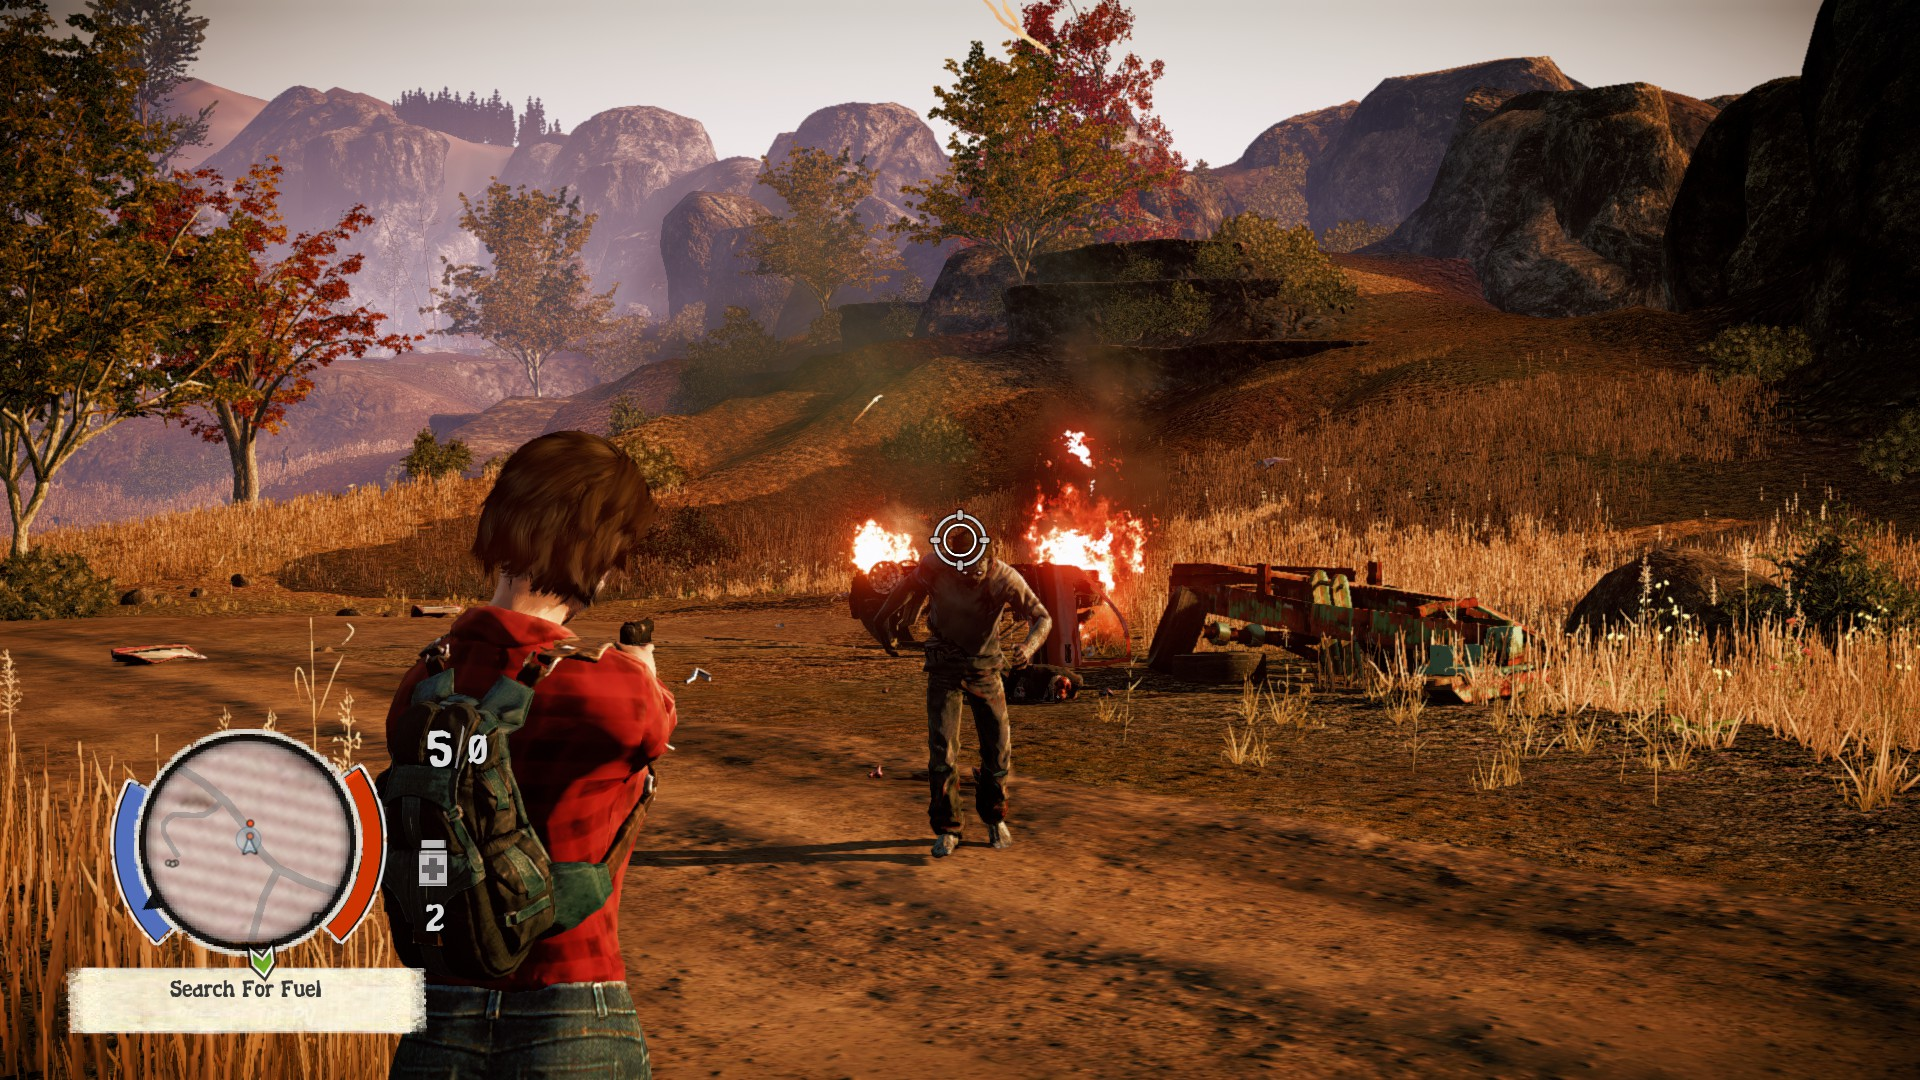 Release date for State of Decay on Xbox One to be announced this month